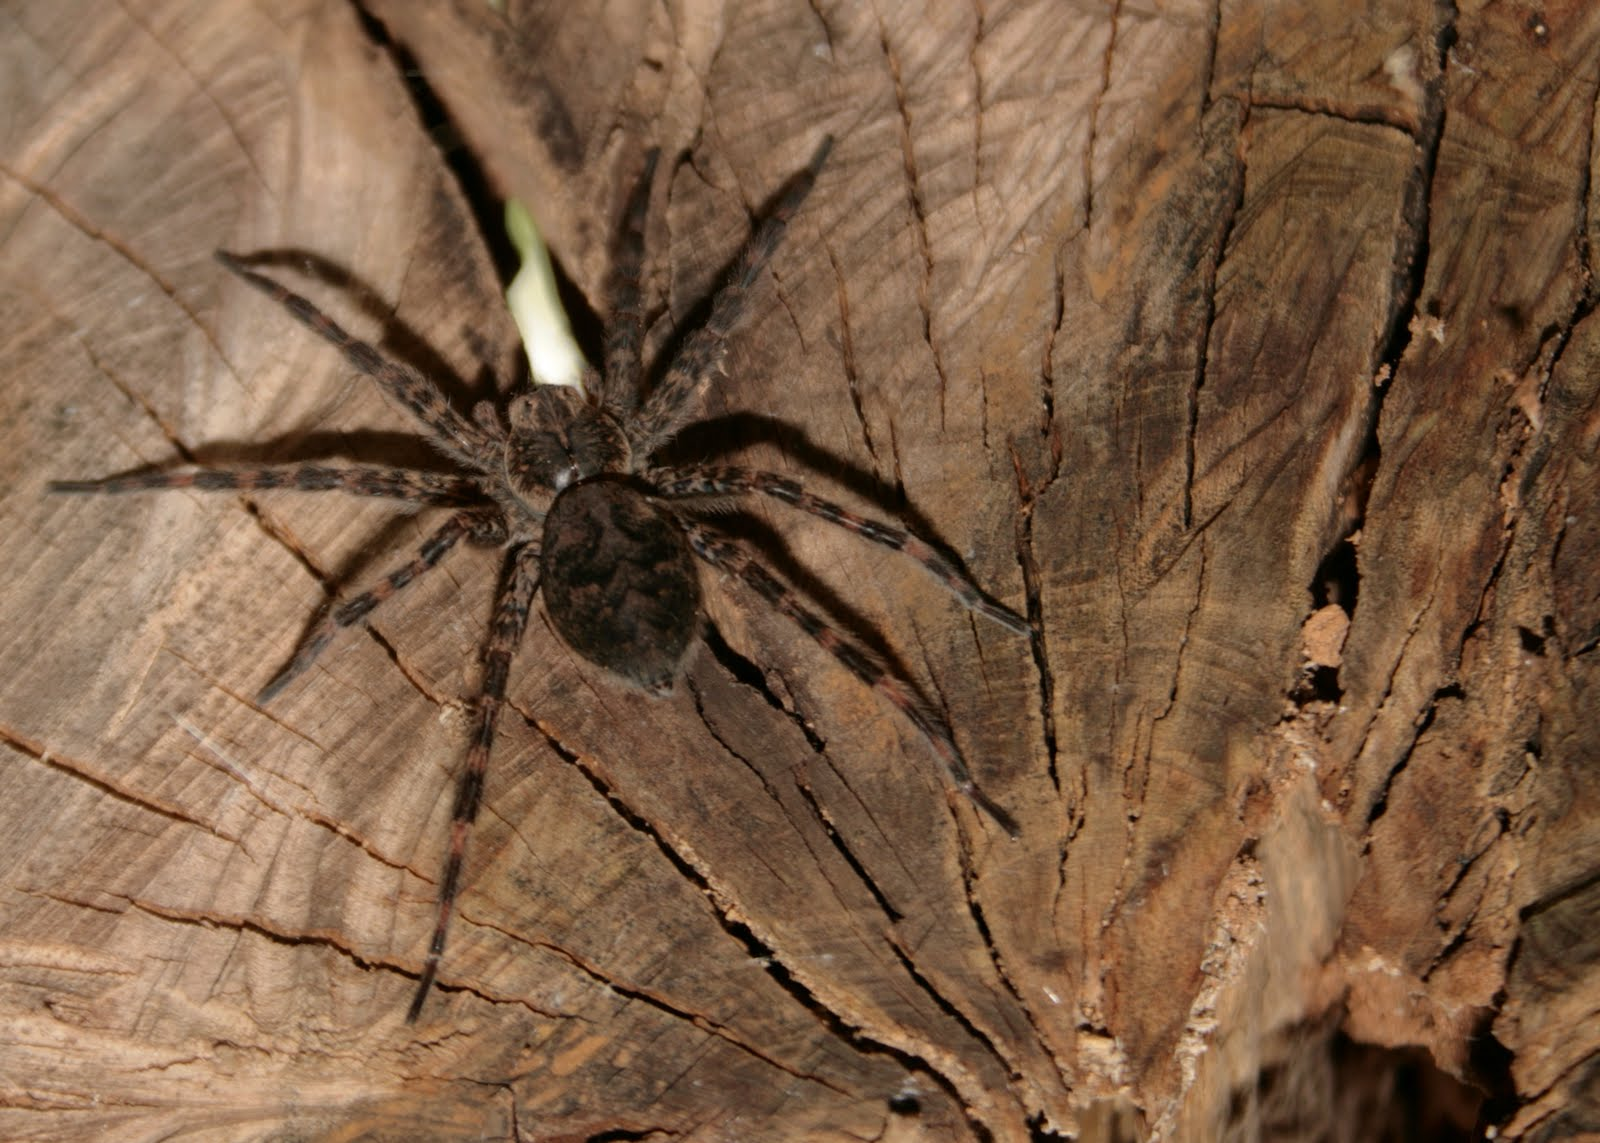 Largest Real Spider Ever